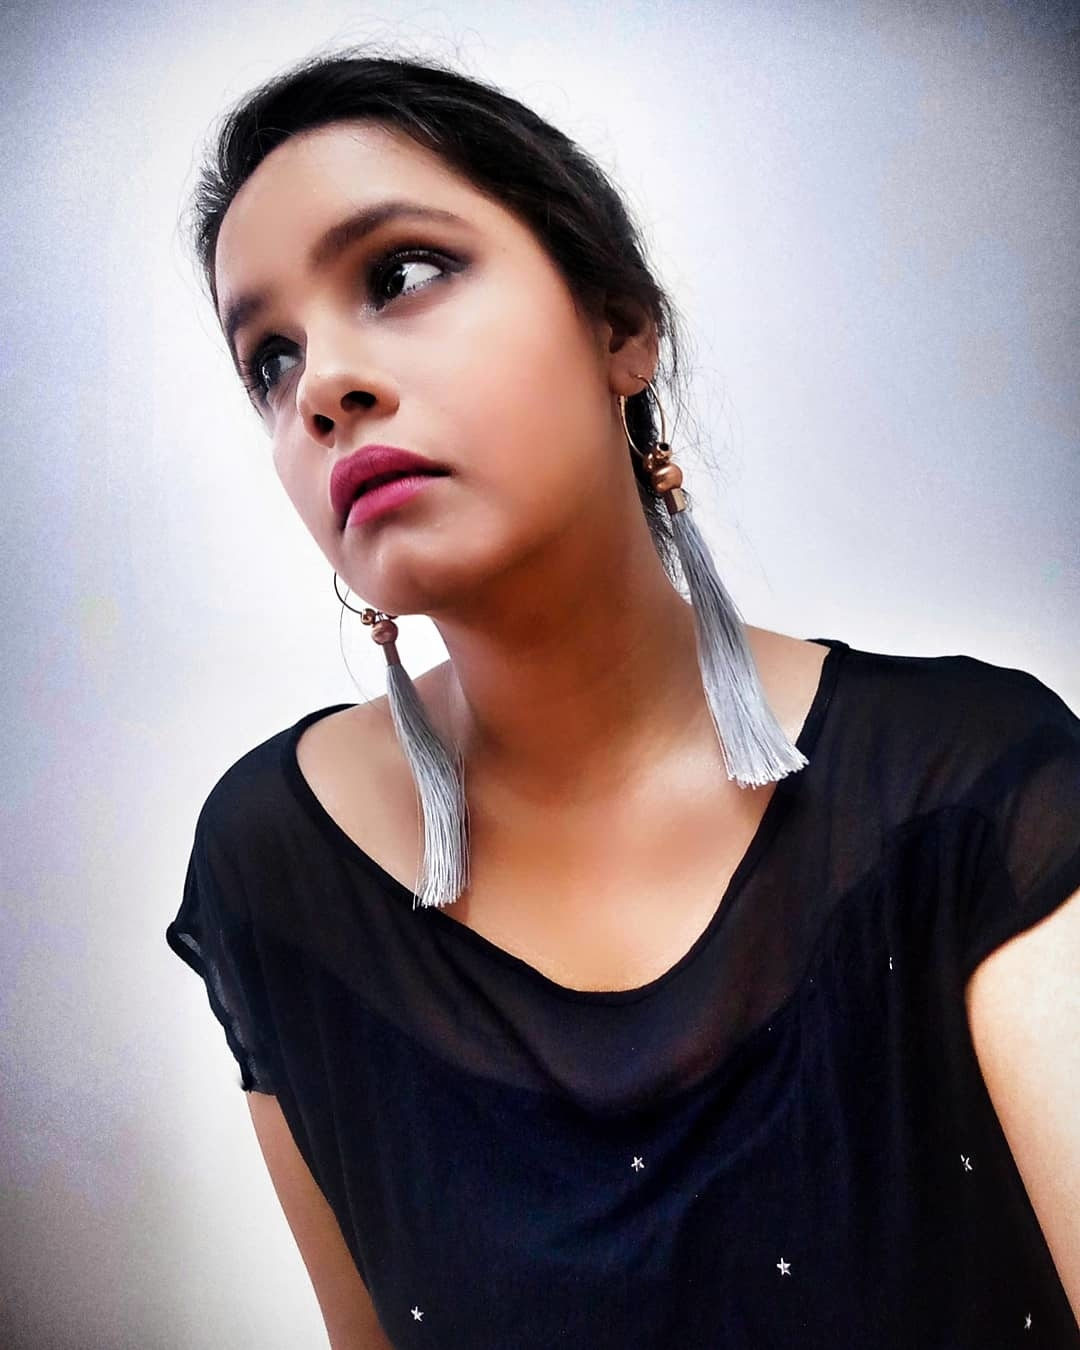 who else love tassel earrings 😍😍 . . #fashion #thestylecheck #delhiblogger #trendy #accessories